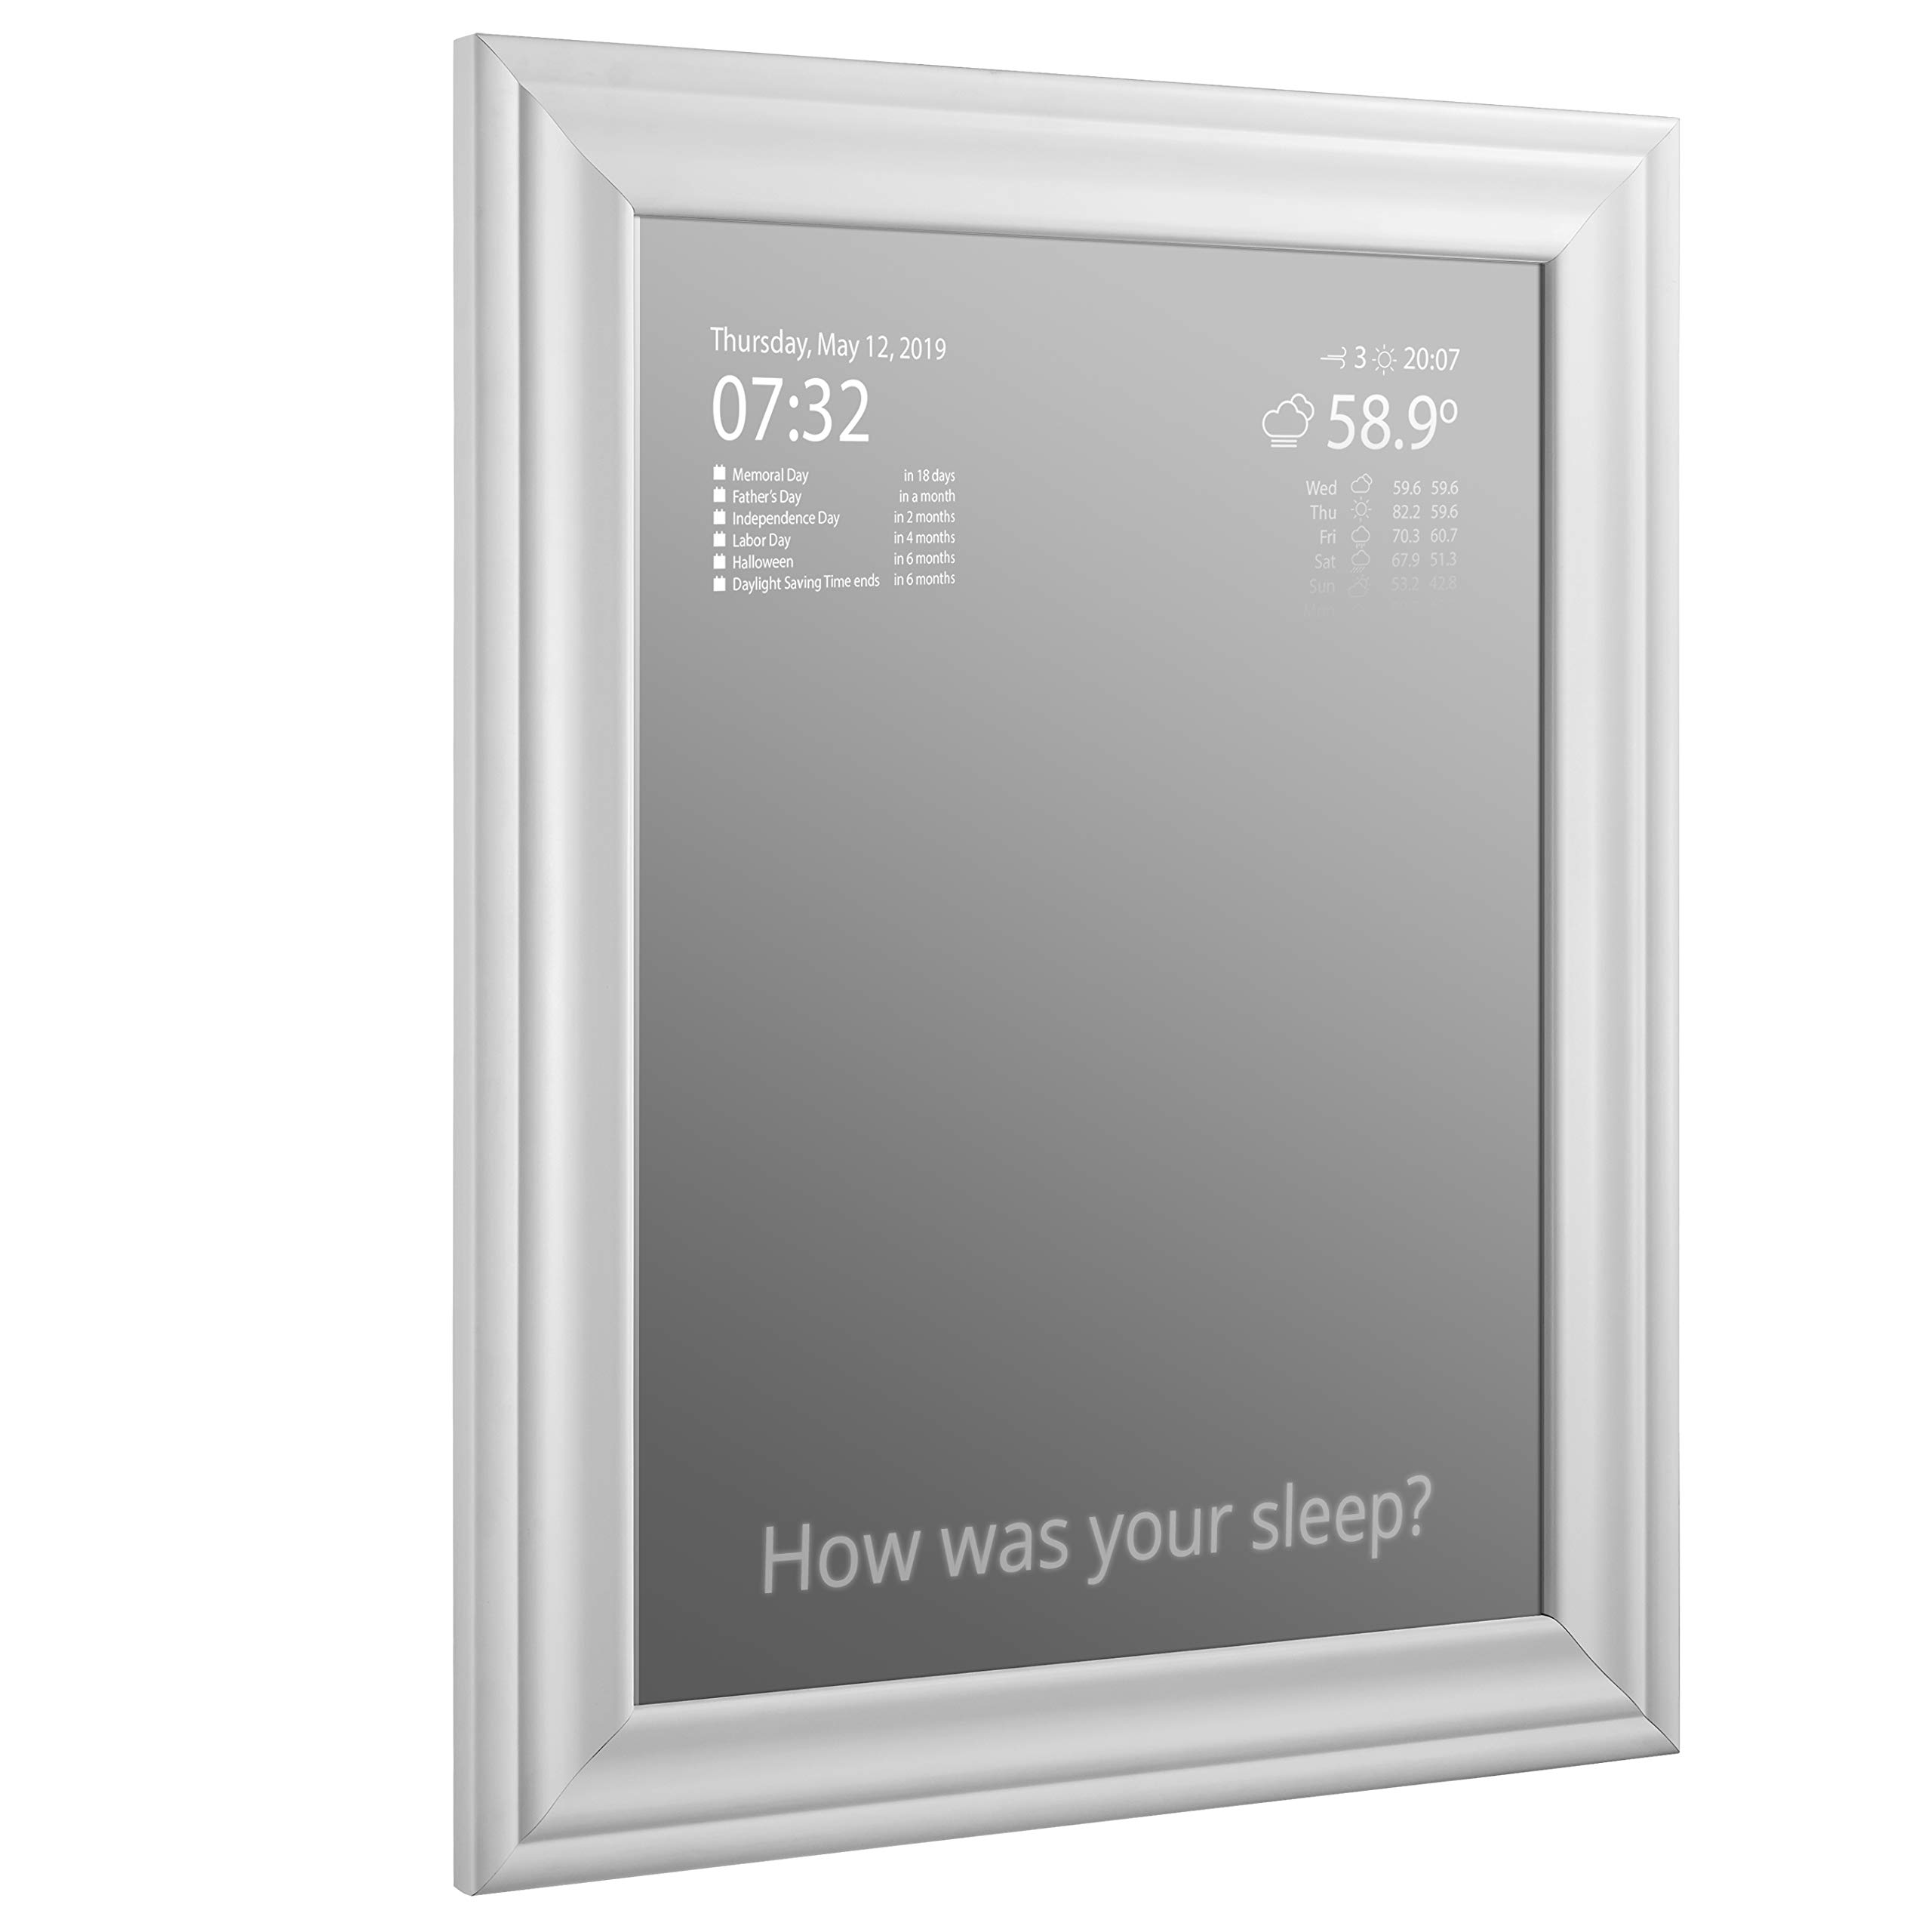 Vilros Magic Glass Mirror and Frame - 2 Way Mirror for Smart Mirror Project (Does not Include LCD)